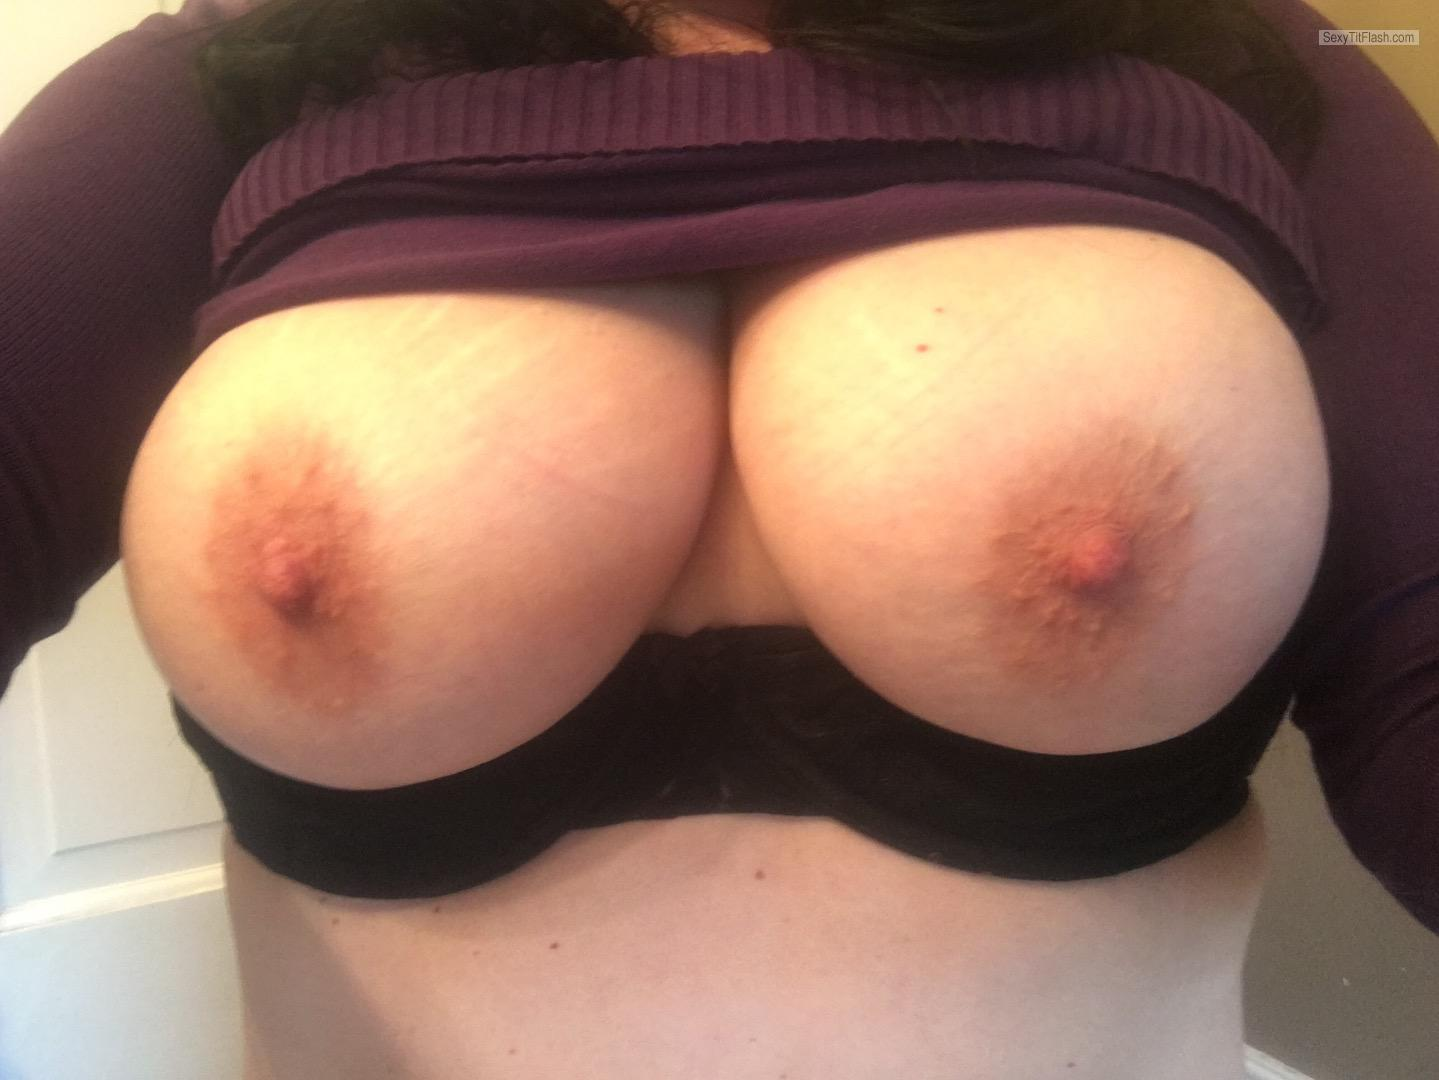 Tit Flash: My Big Tits (Selfie) - Topless Shan Non from United States